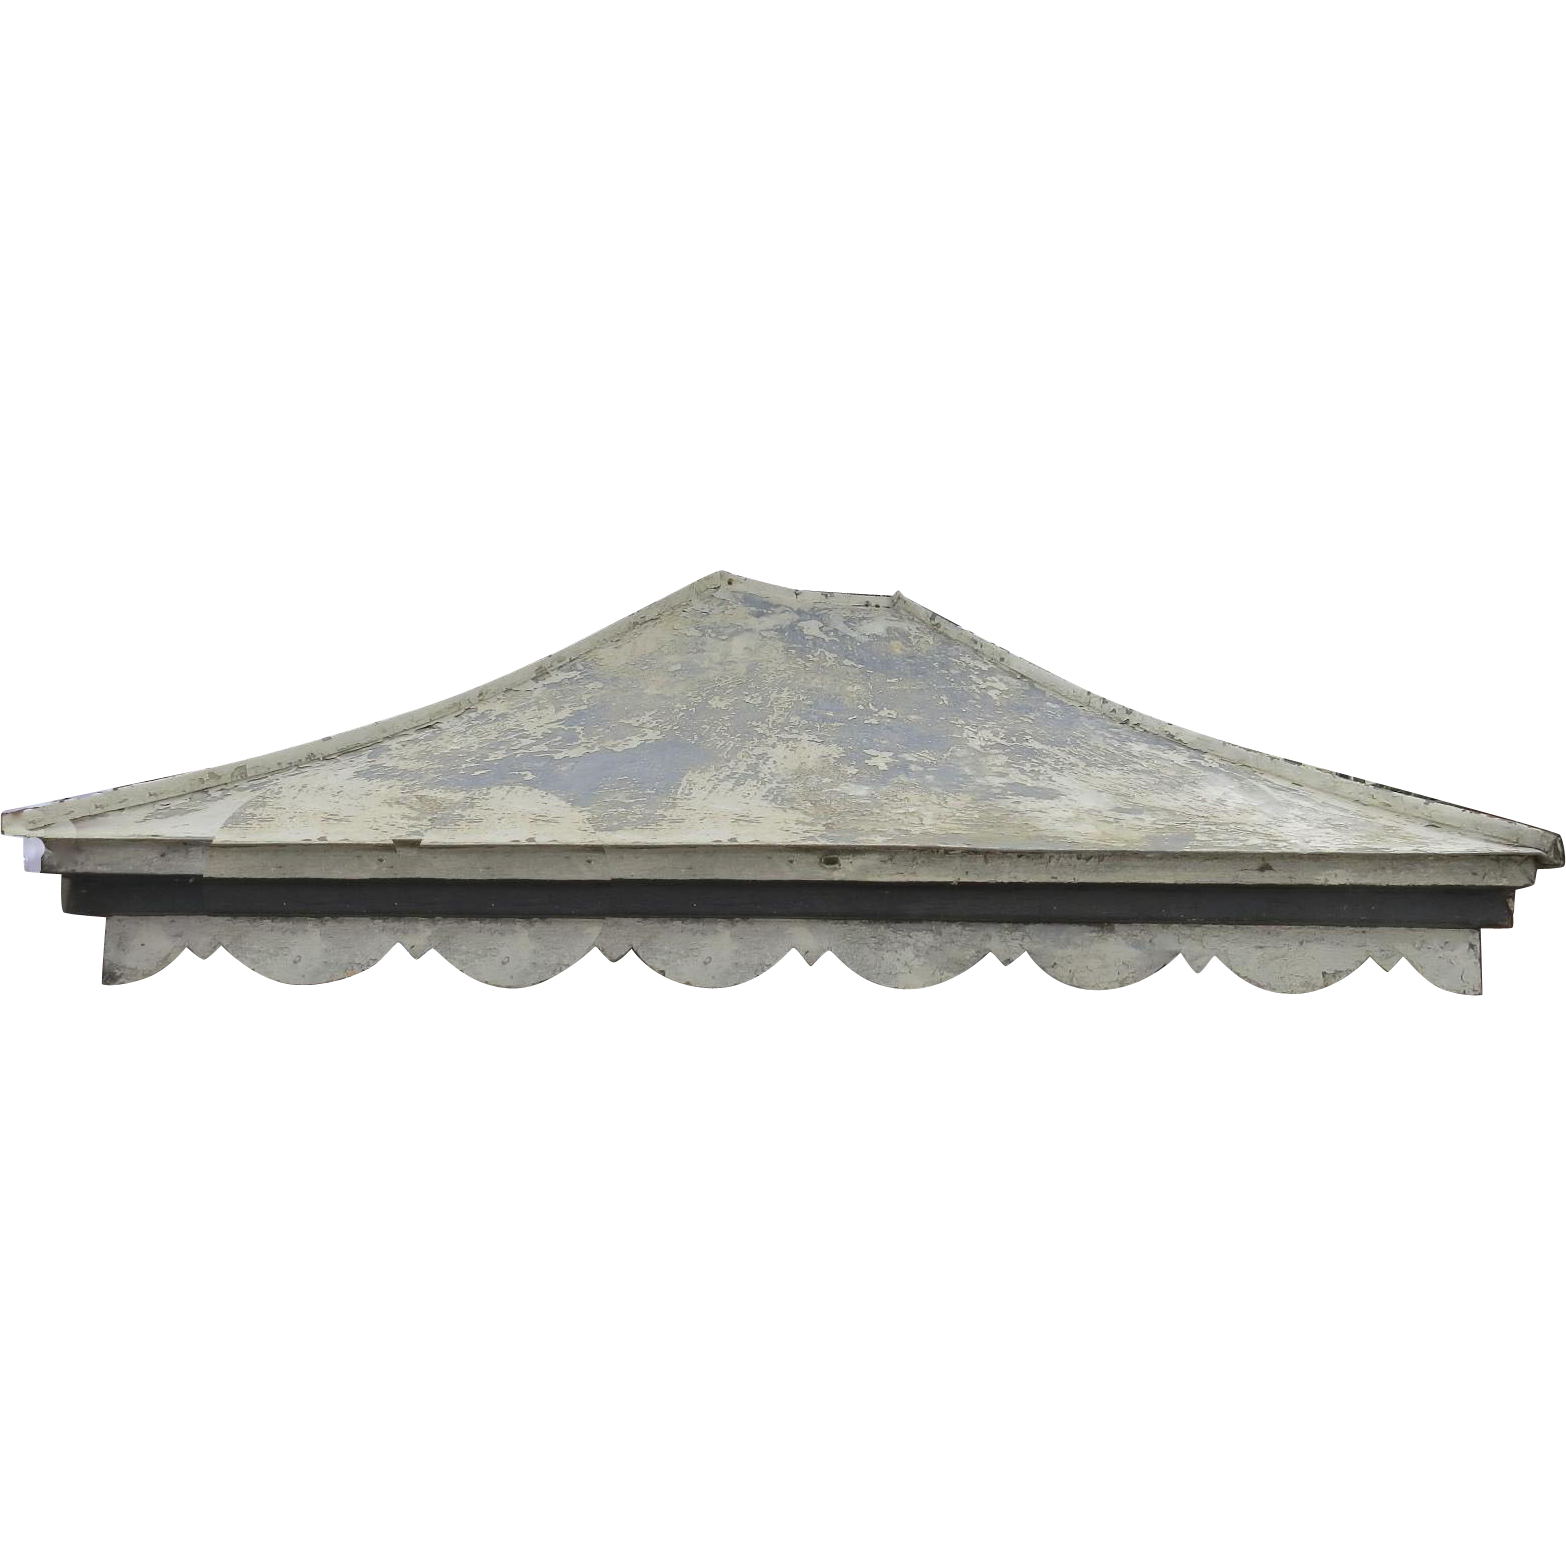 Vintage Tin Painted Entrance Door Awning Canopy with Scalloped Edge  Black Tulip Antiques Ltd. | Ruby Lane  sc 1 st  Ruby Lane & Vintage Tin Painted Entrance Door Awning Canopy with Scalloped ...